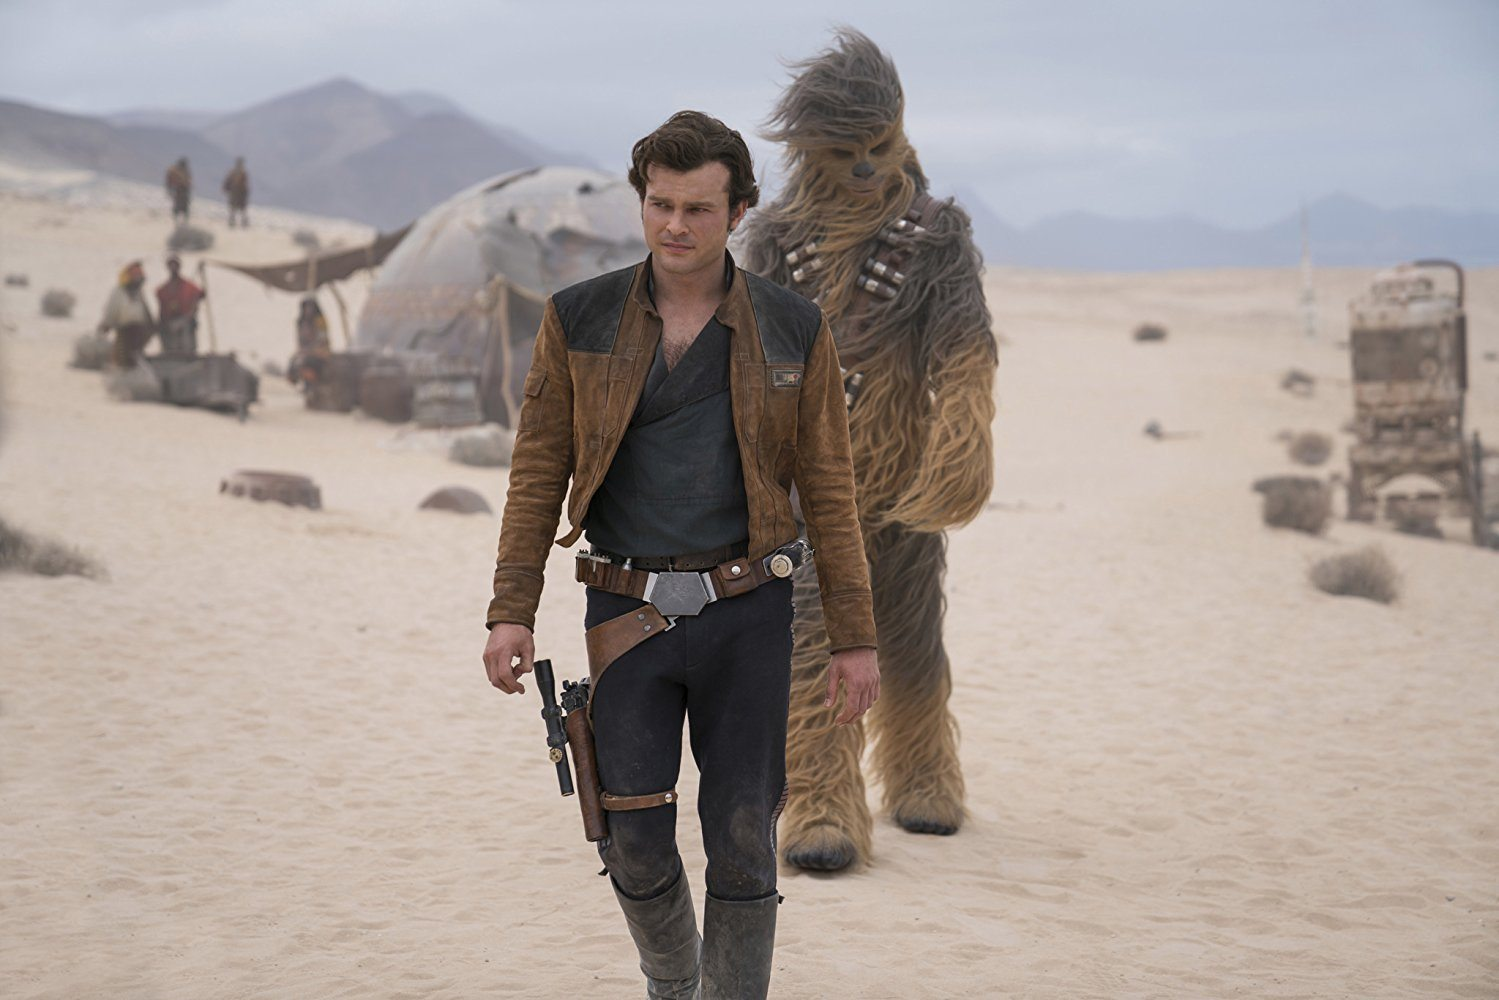 Chewie and Han in Solo: A Star Wars Story